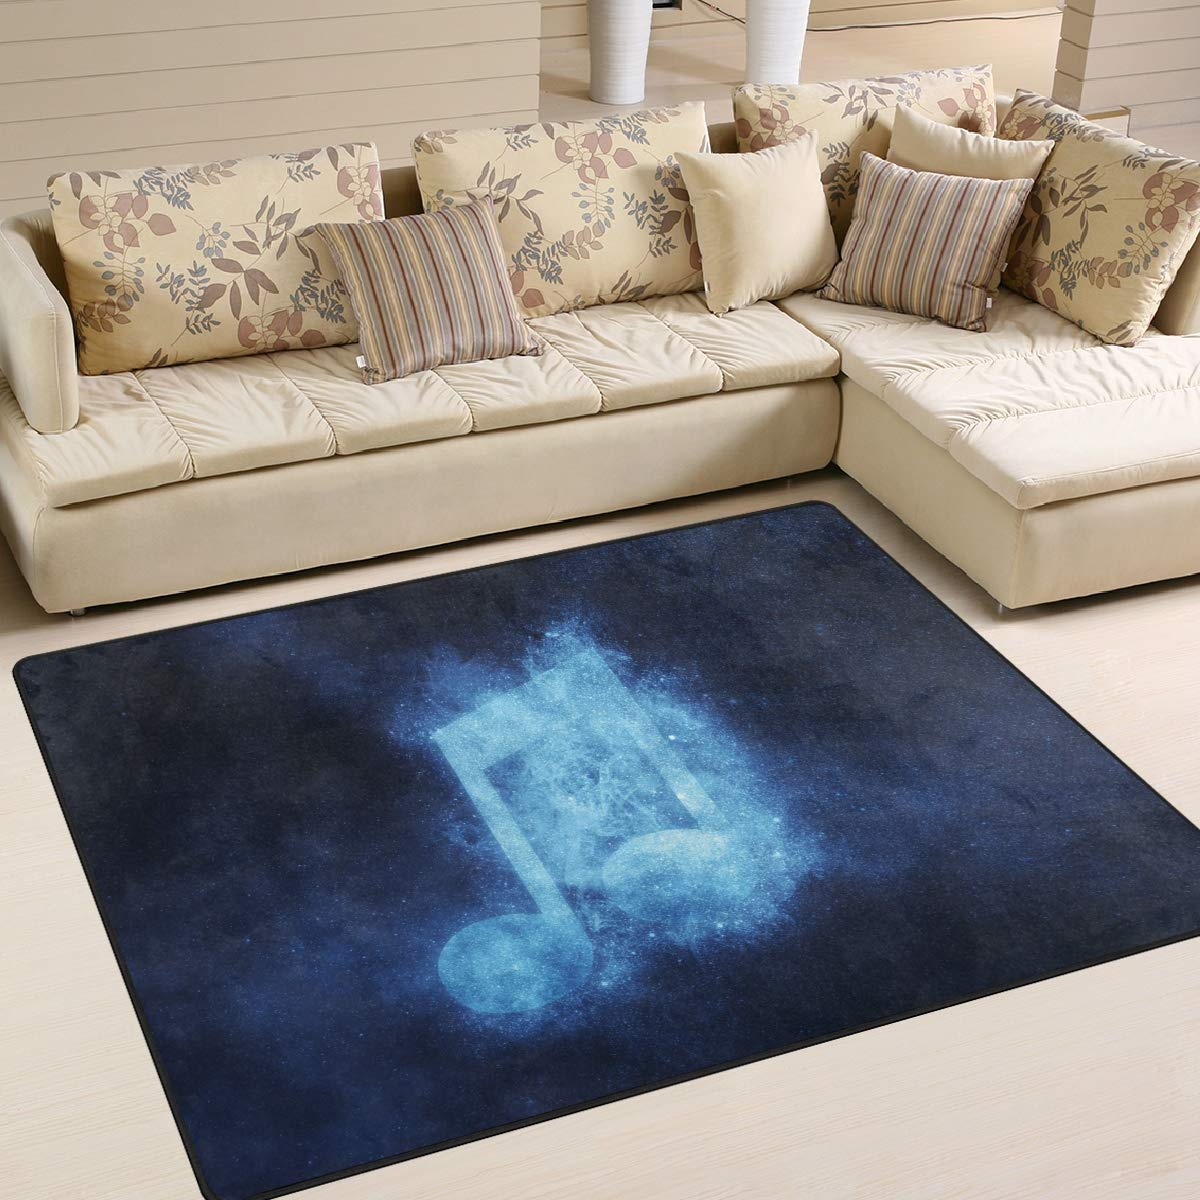 ALAZA Music Note Sign Blue Starry Night Sky Area Rug Soft Non Slip Floor Mat Washable Carpet for Bedroom Living Room 1 Piece 4x5 Feet